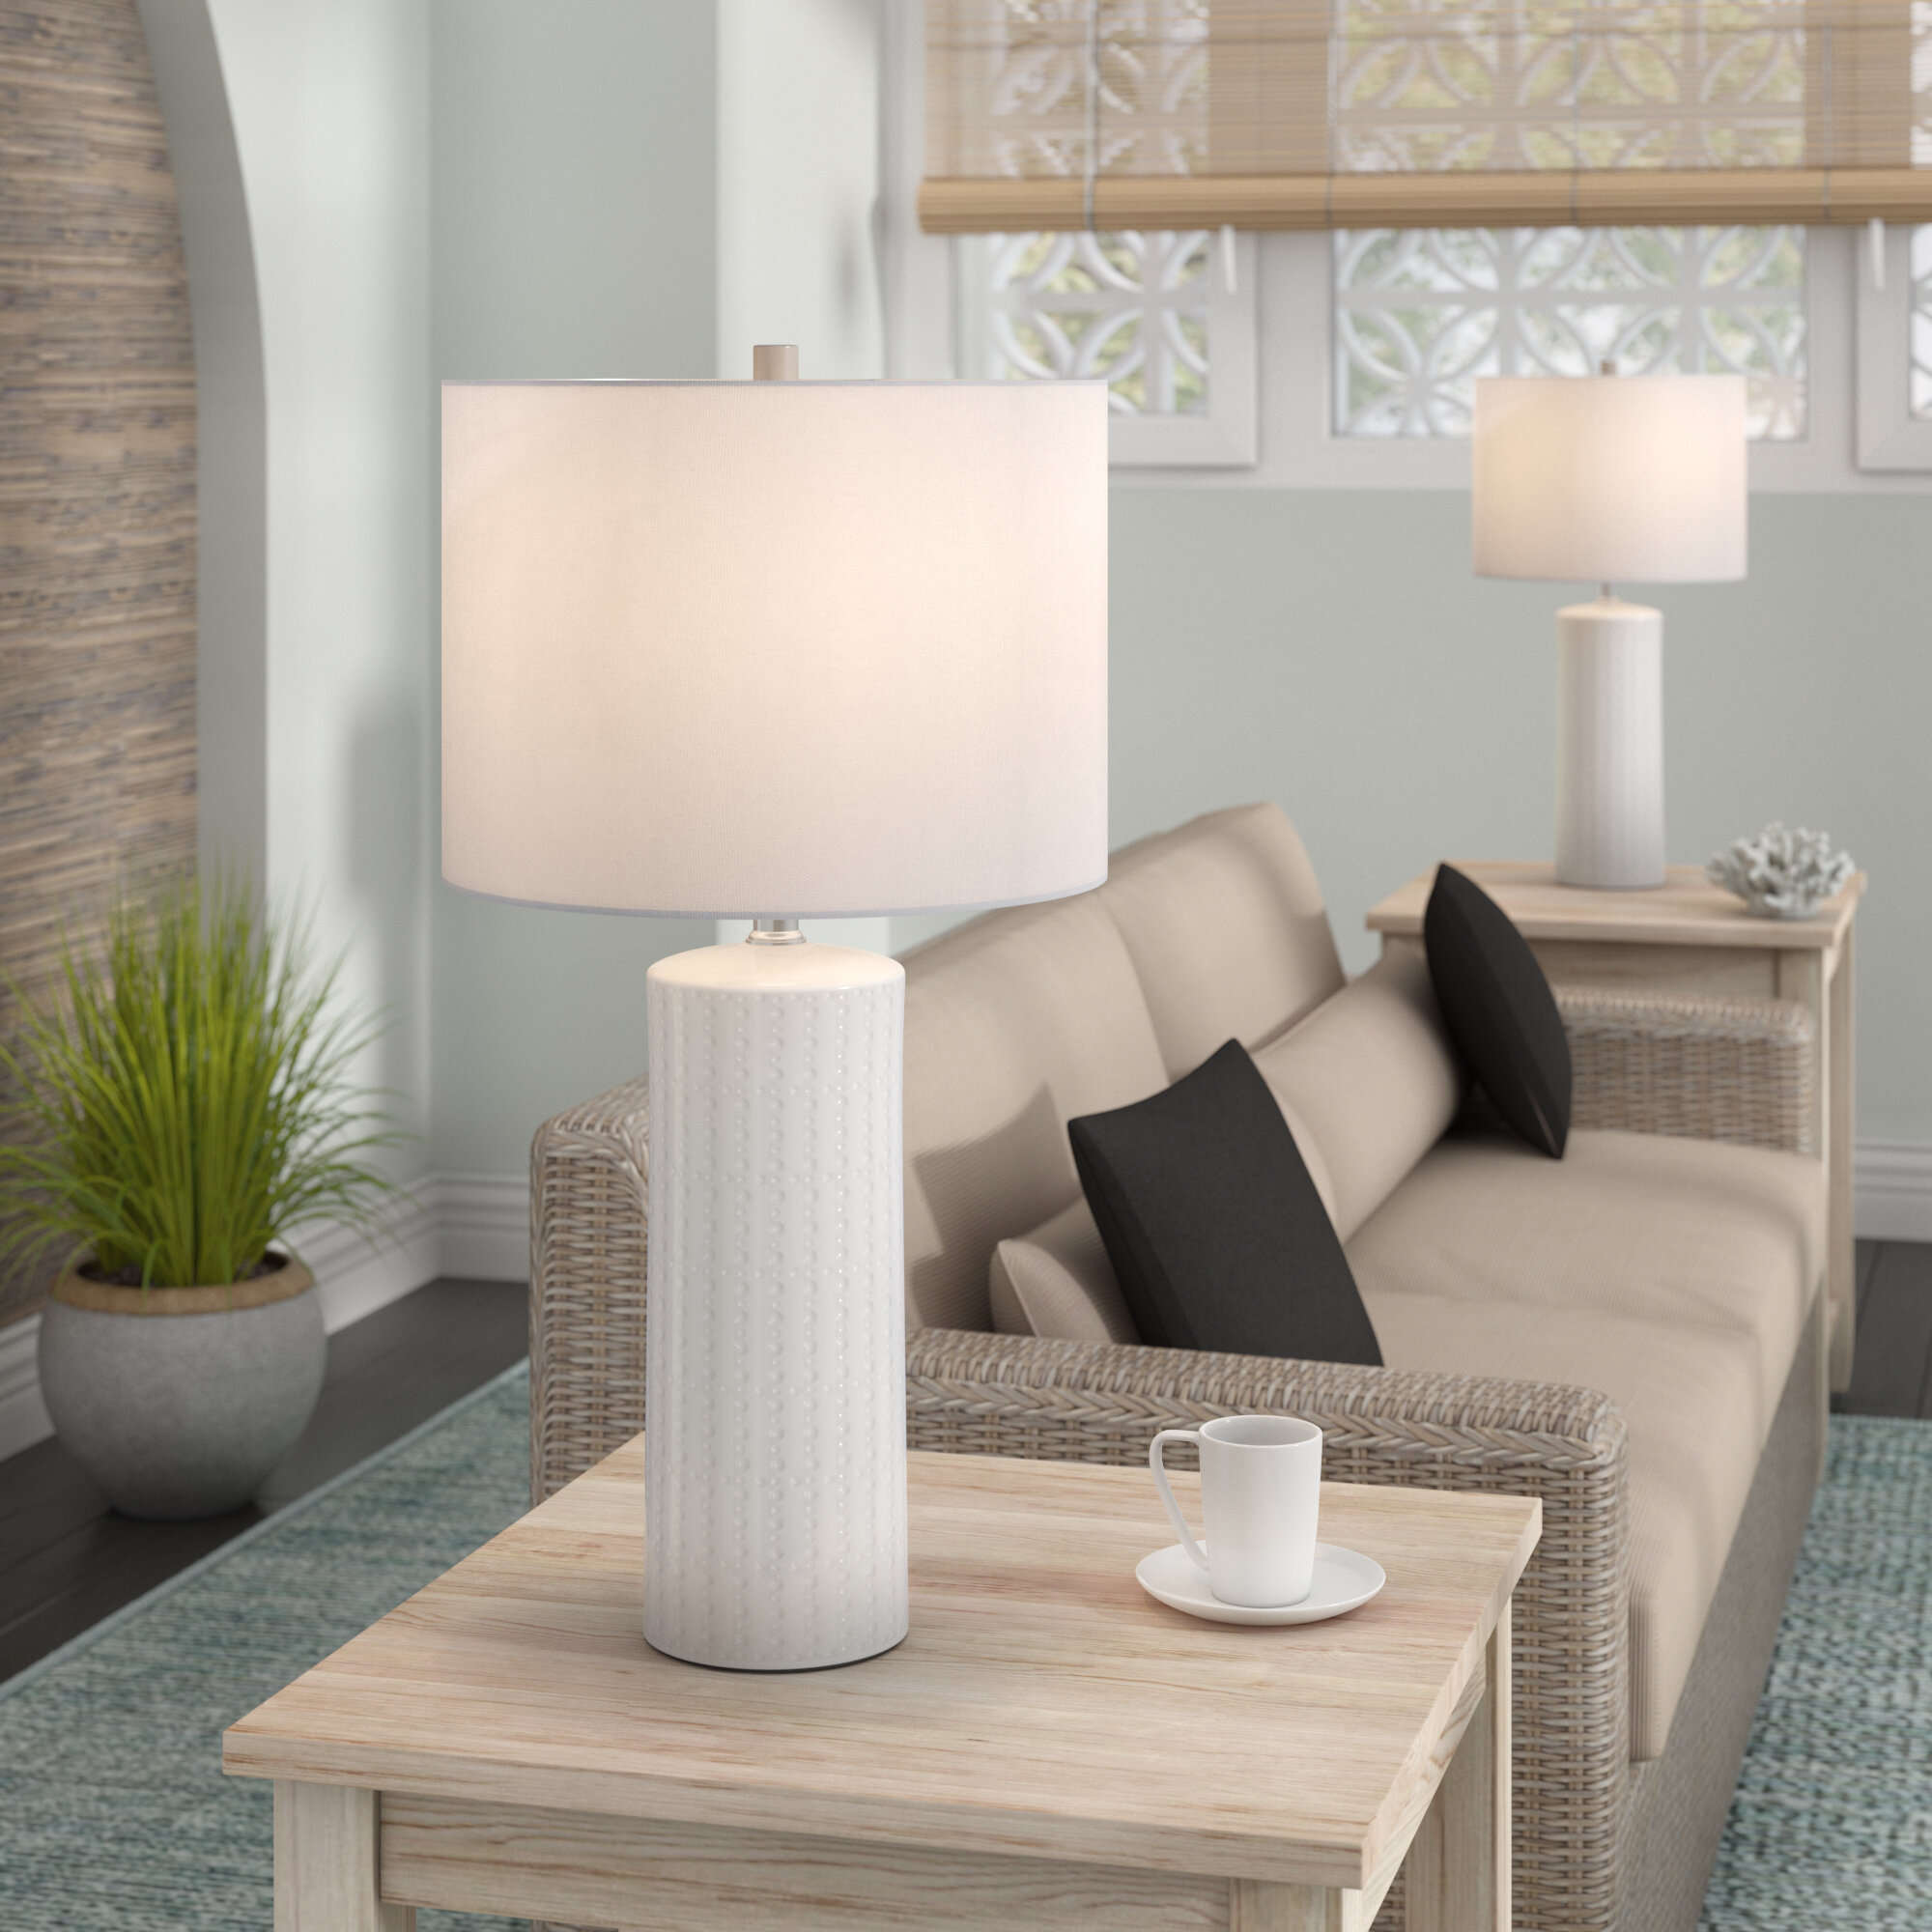 Easy Large Table Lamps For Living Room 60 With Additional ...